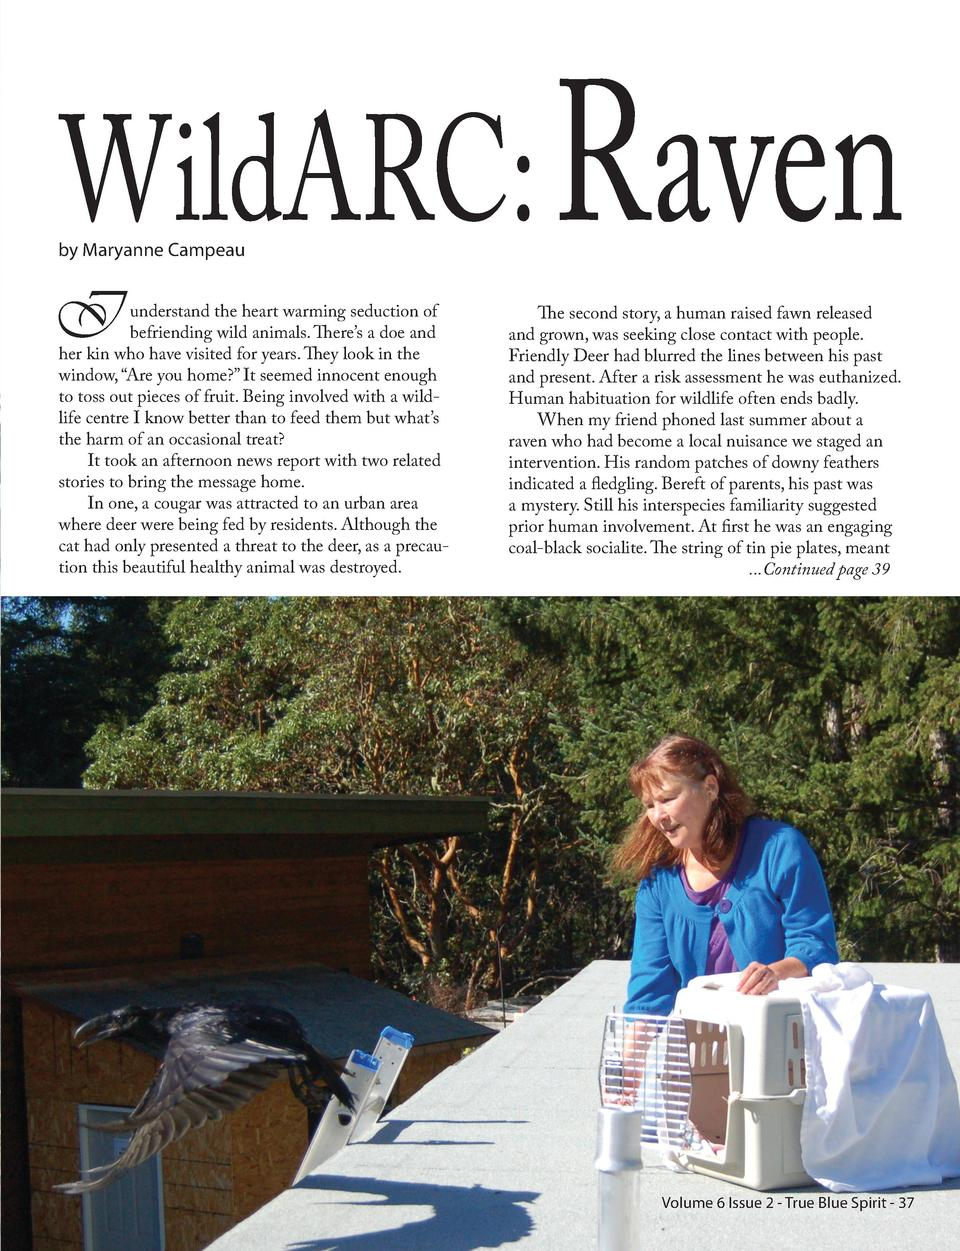 WildARC  Raven  by Maryanne Campeau  I  understand the heart warming seduction of befriending wild animals. There   s a do...